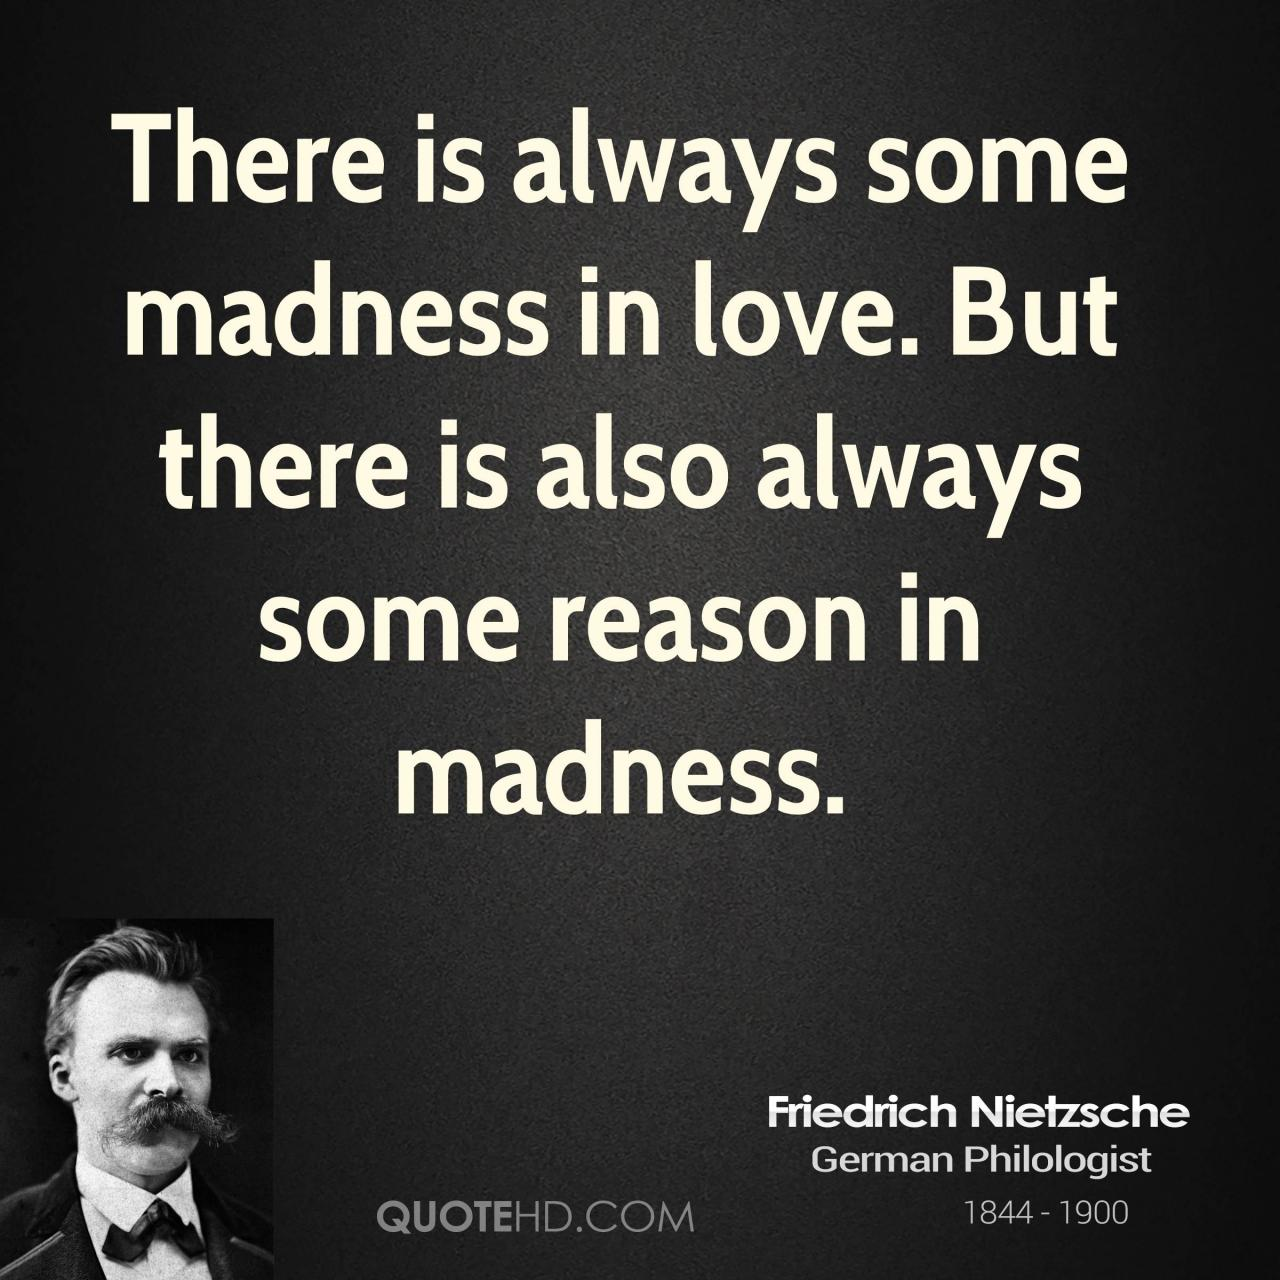 There Is Always Some Madness In Love But There Is Also Always Some Reason In